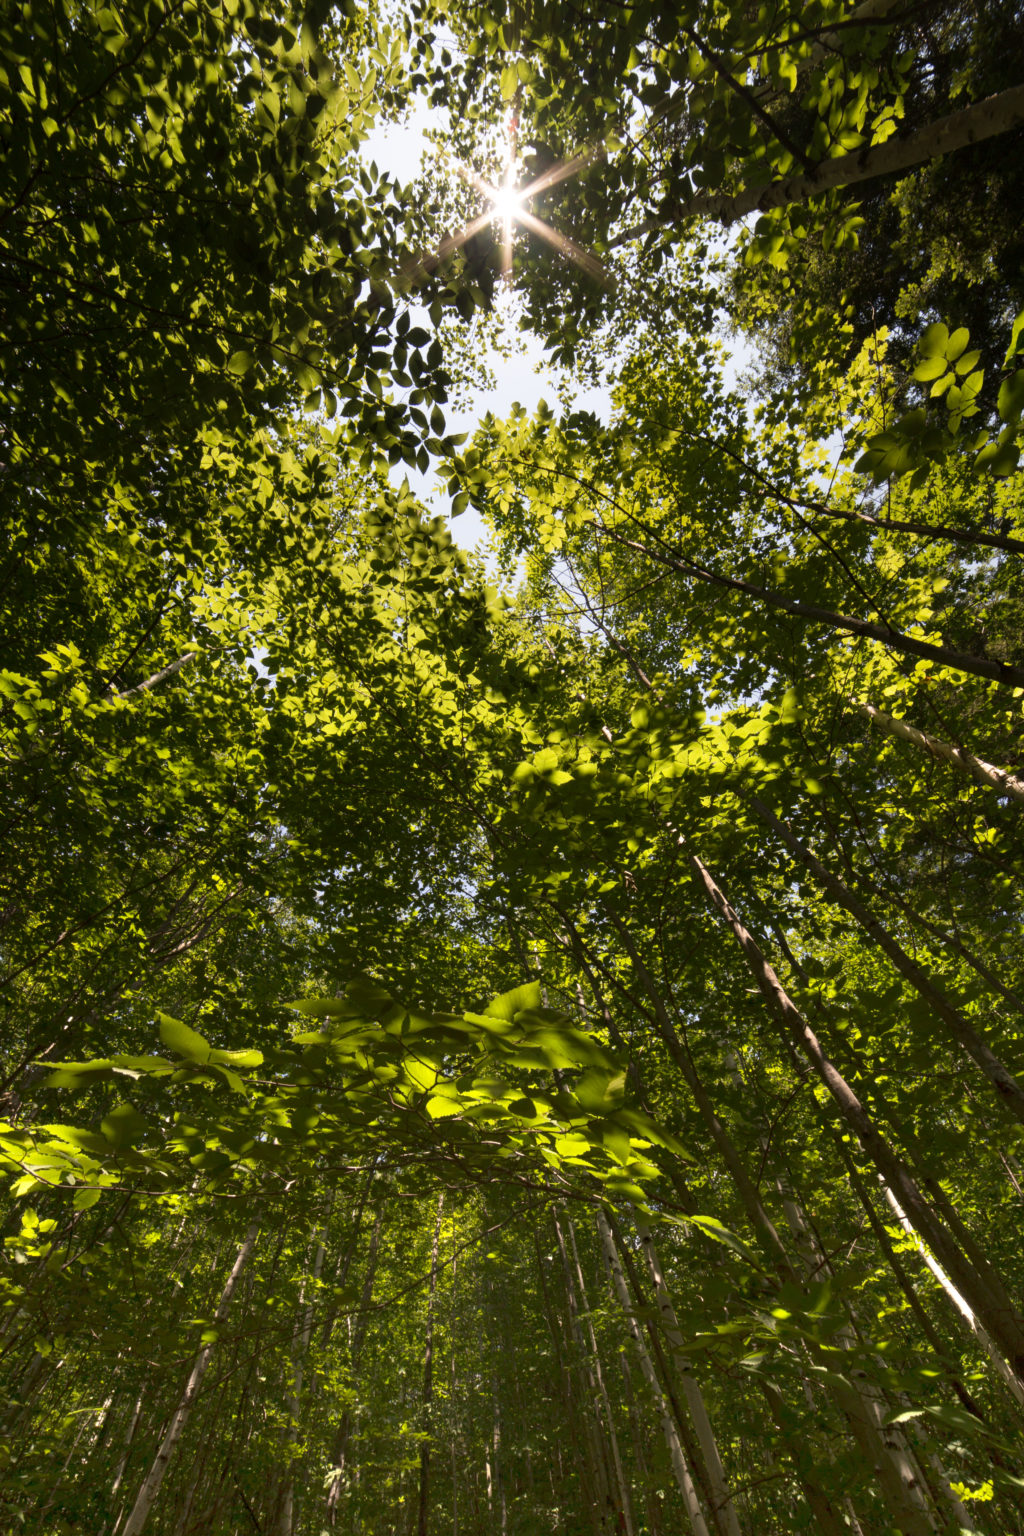 Looking Up at the Forest Canopy